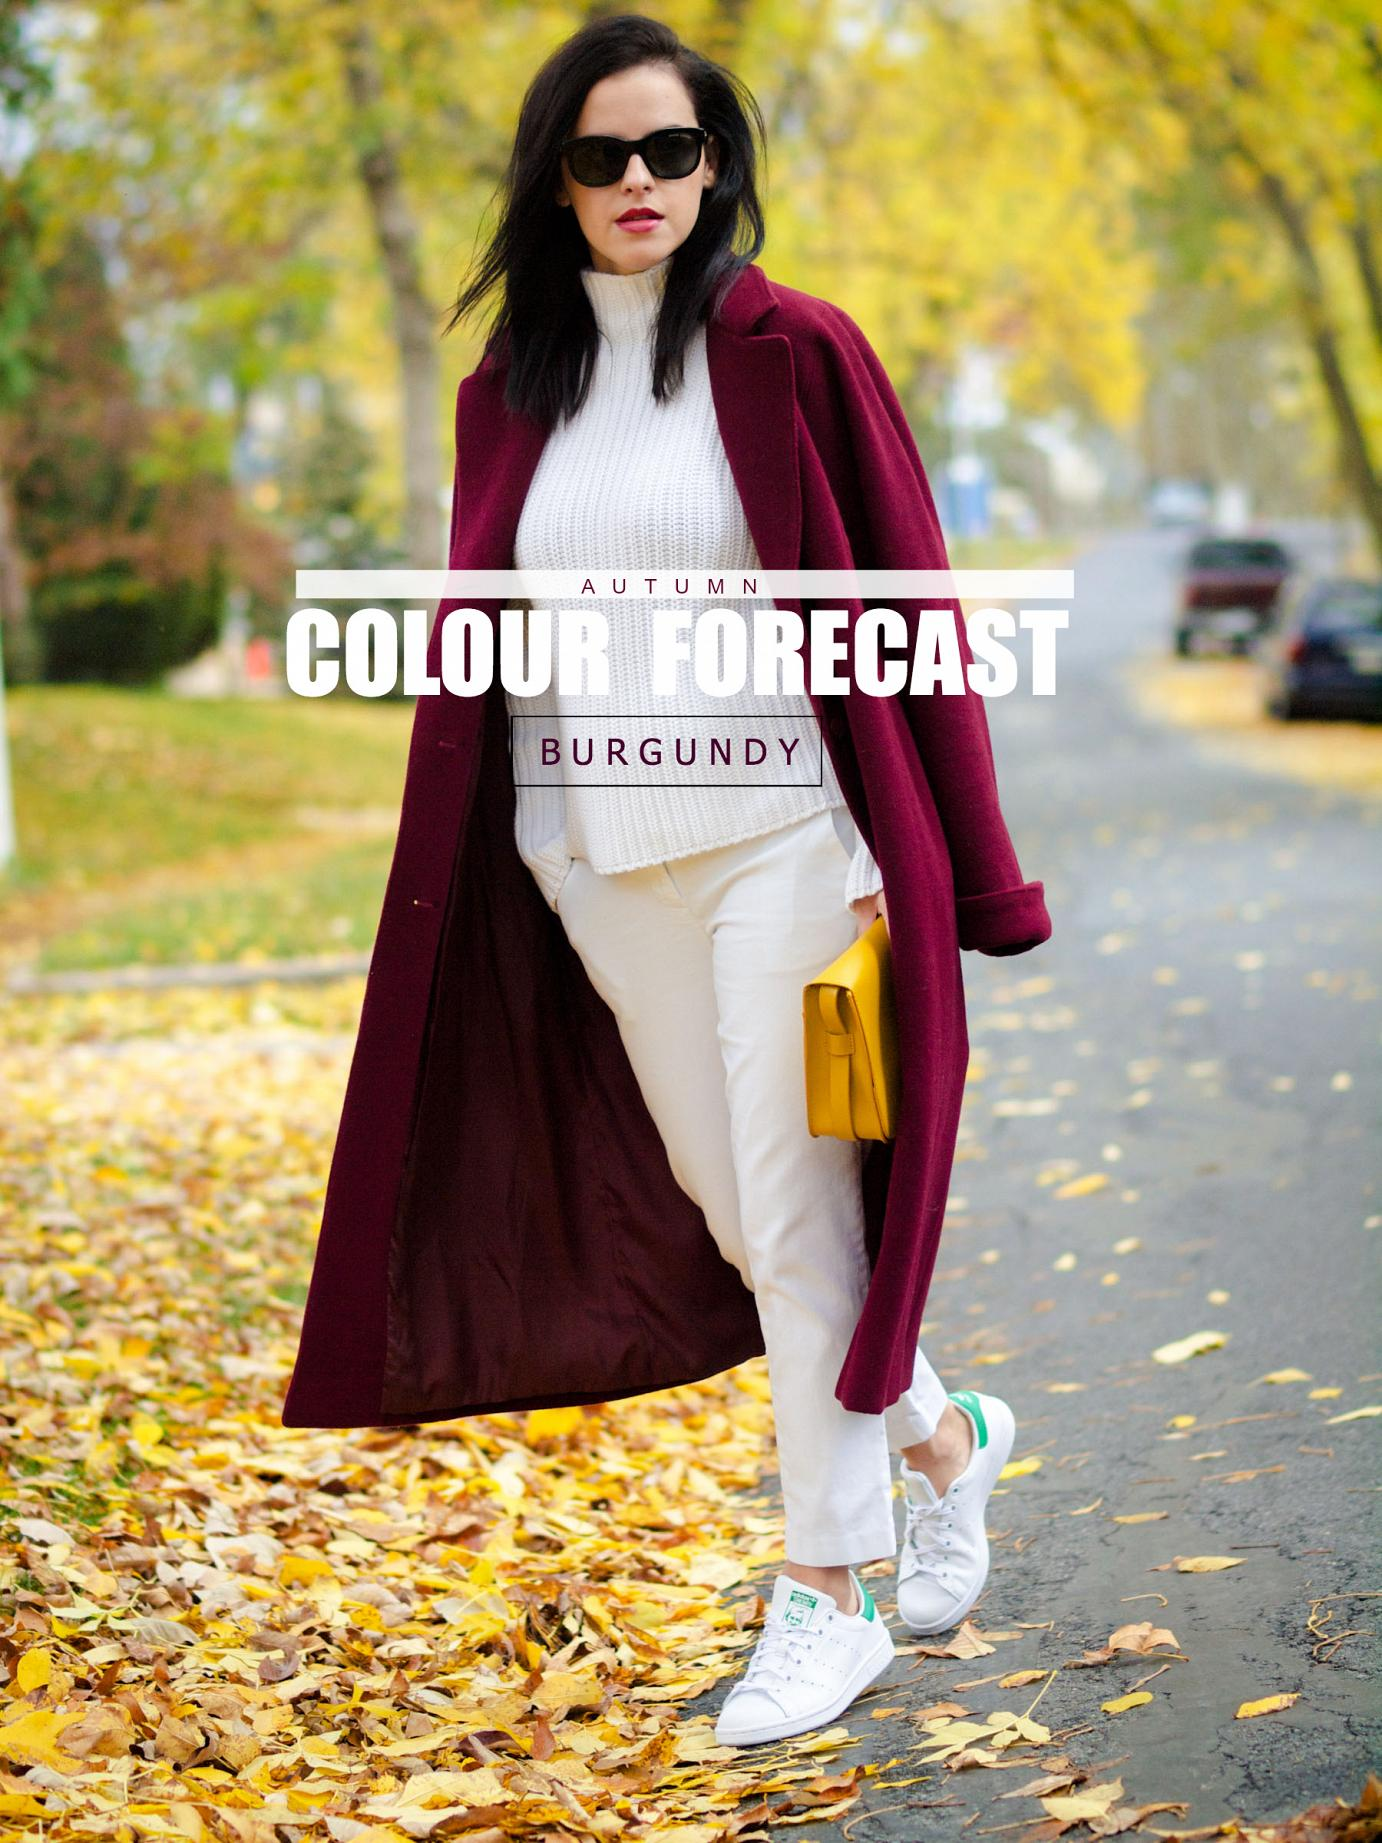 bittersweet colours, fall colors, fall coats, fall trends, burgundy coat, burgundy trend, street style, maternity style, 18 weeks, white on white trend, Tommy Hilfiger, adidas, stan smith adidas, white sneakers, sneakers trend, red lips